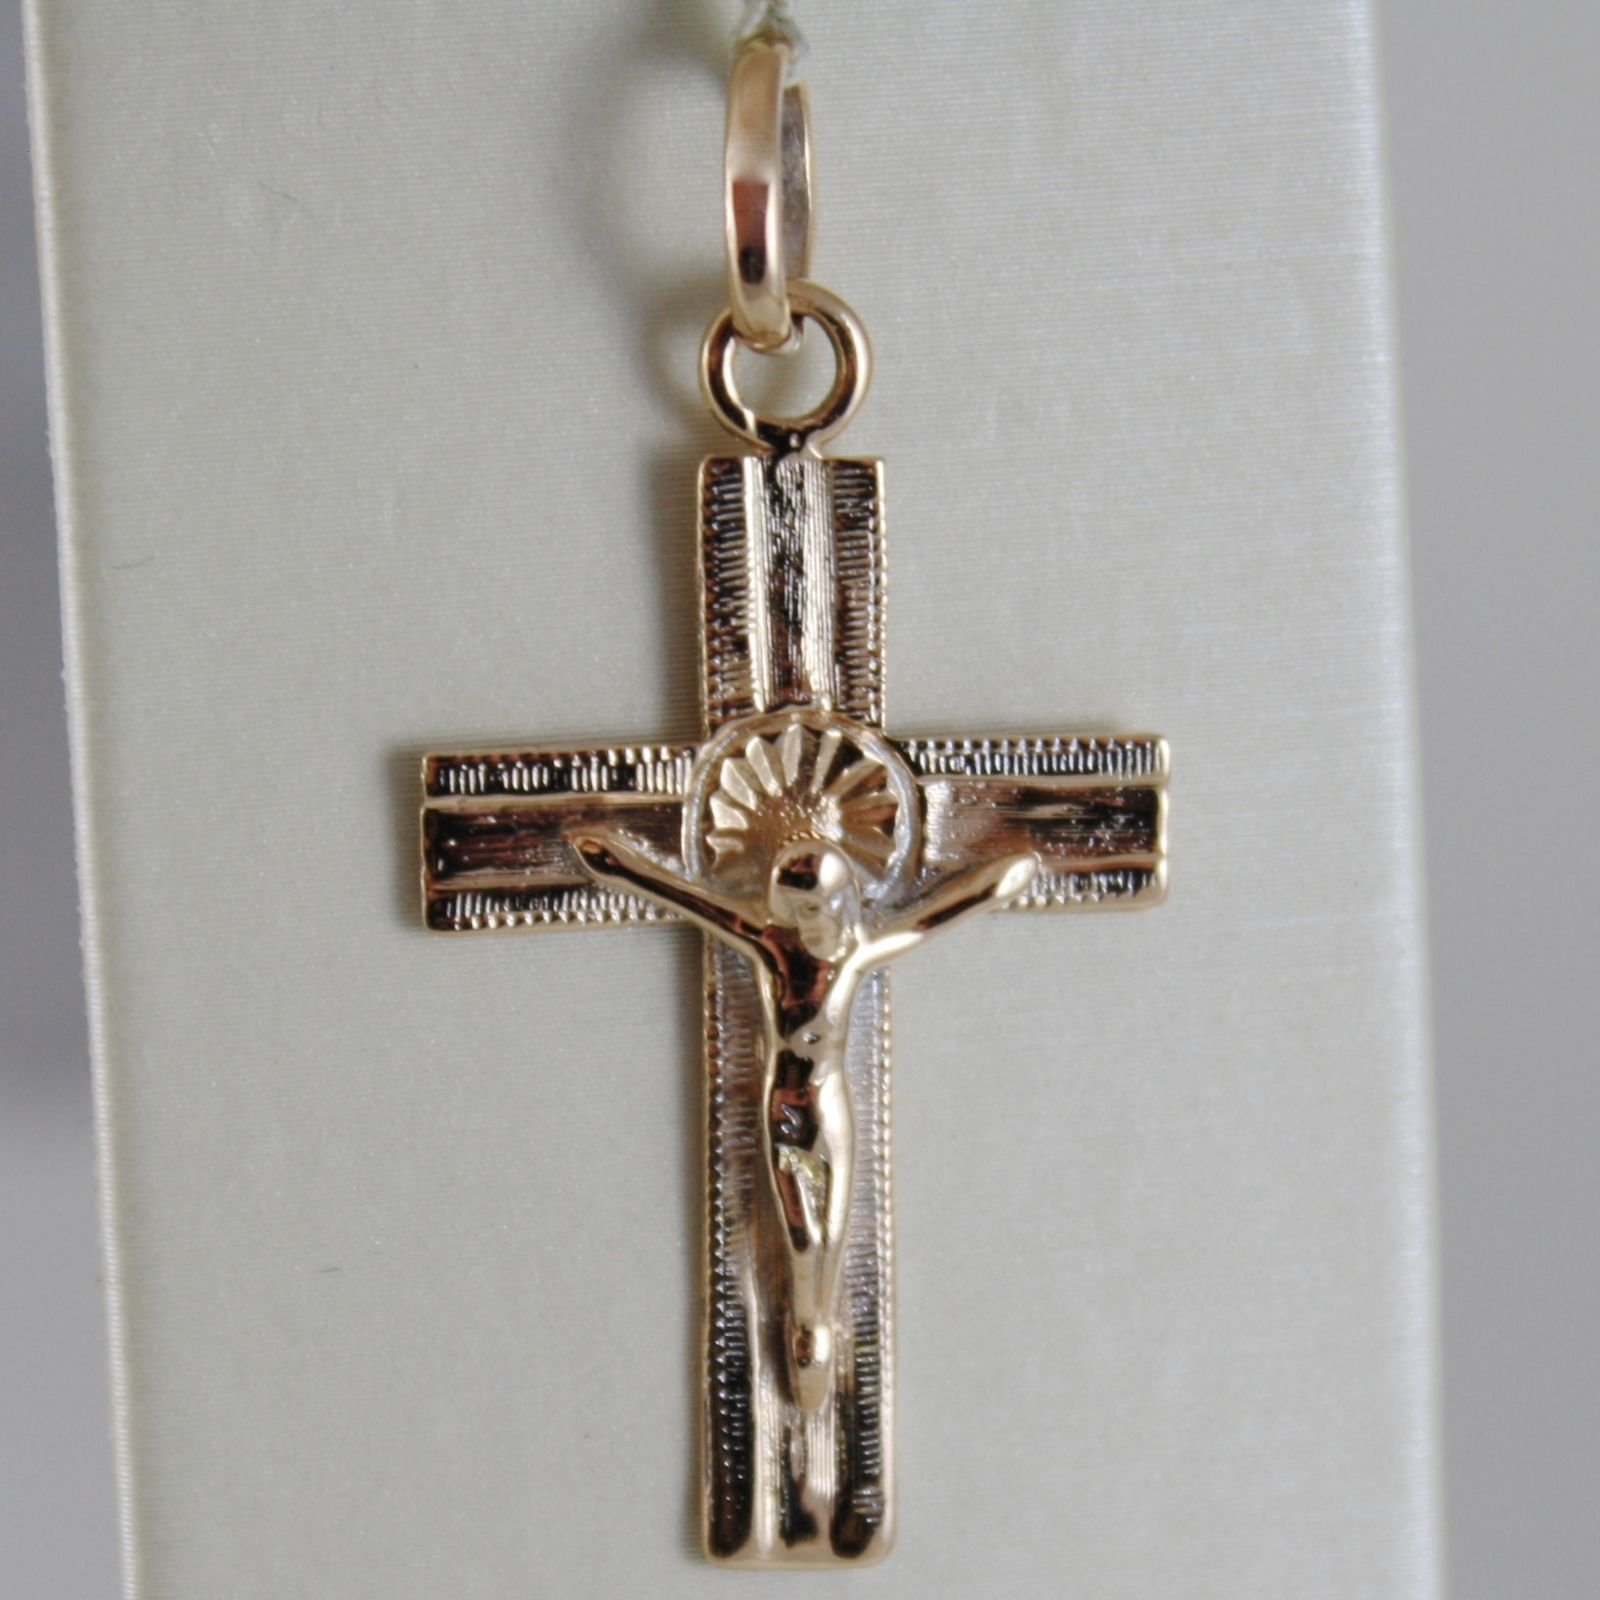 18K ROSE GOLD CROSS WITH JESUS, SQUARED WORKED, SHINY 1.50 INCHES, MADE IN ITALY